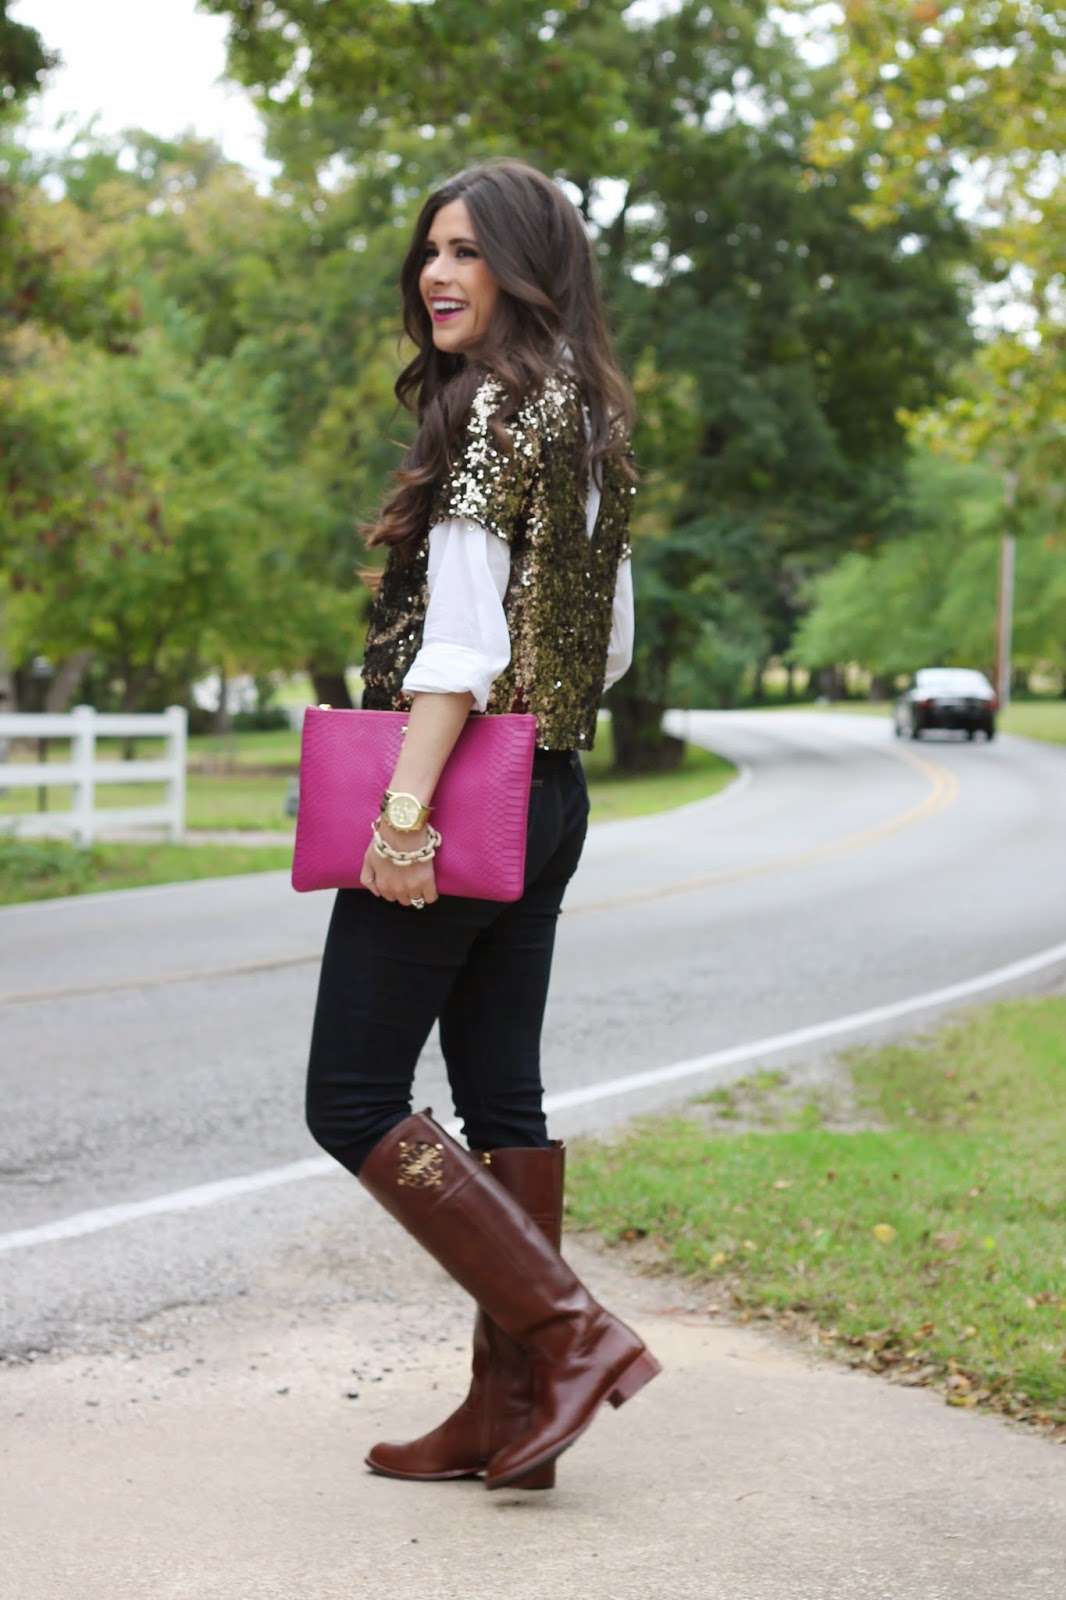 mac rebel, brunette, fashion blog, fall fashion, pinterest fall fashion, emily gemma, the sweetest thing blog, jcrew, jcrew sequin shirt, tory burch boots, kiernan boots, rebecca minkoff, plaid and sequins, gigi new york clutch